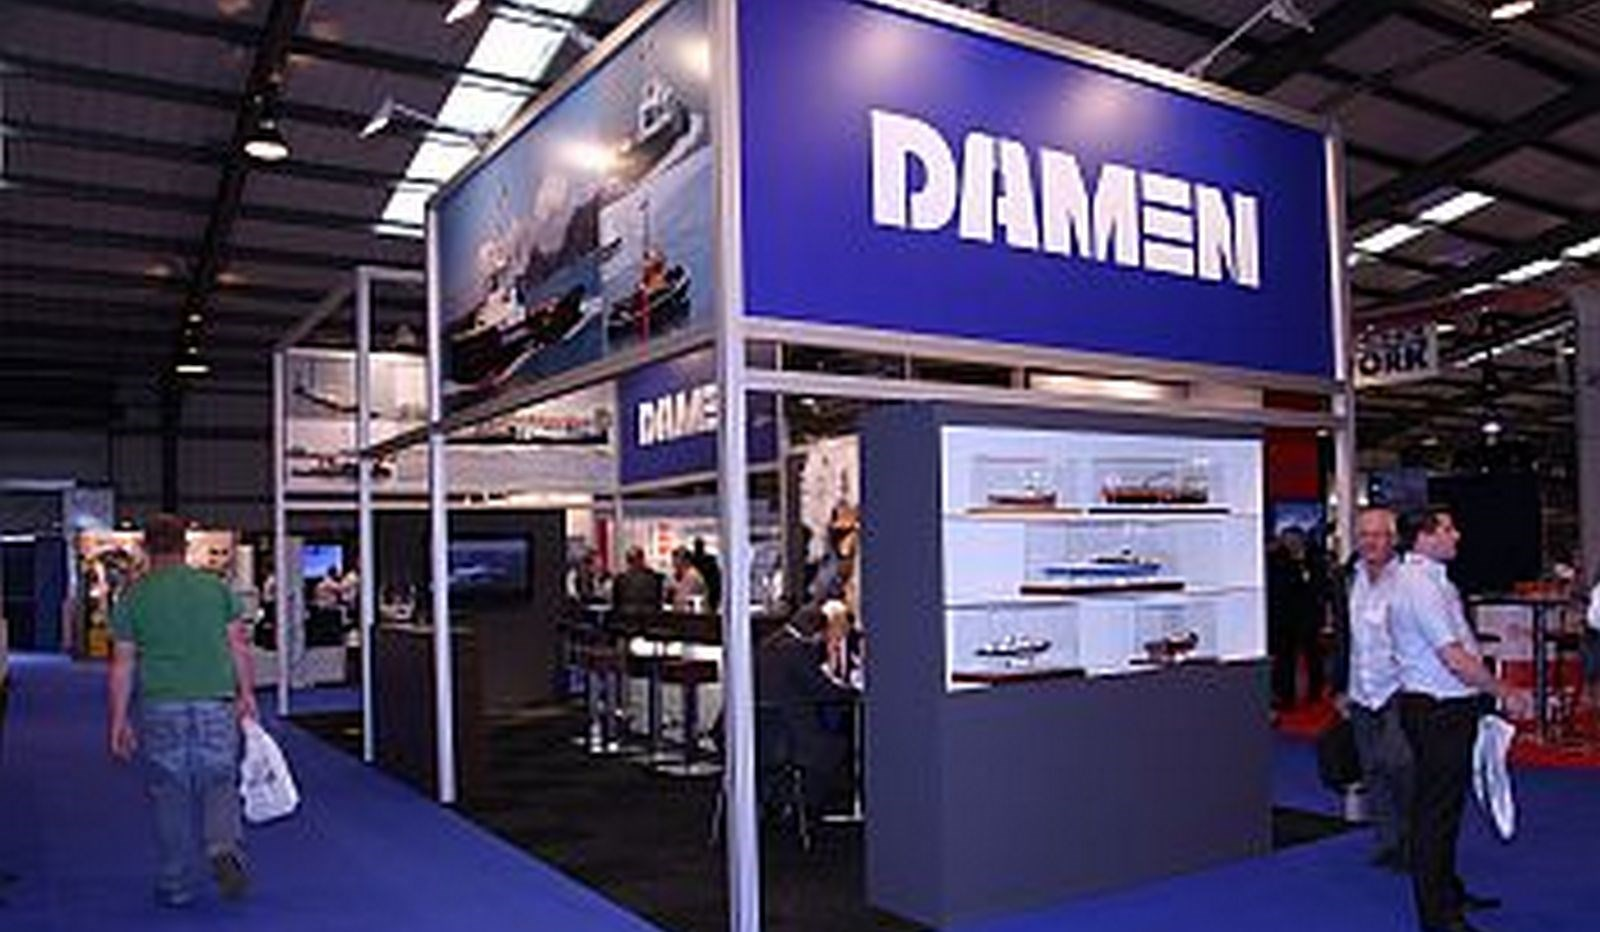 The Seawork exhibition in Southampton U.K. this year was again a great success.